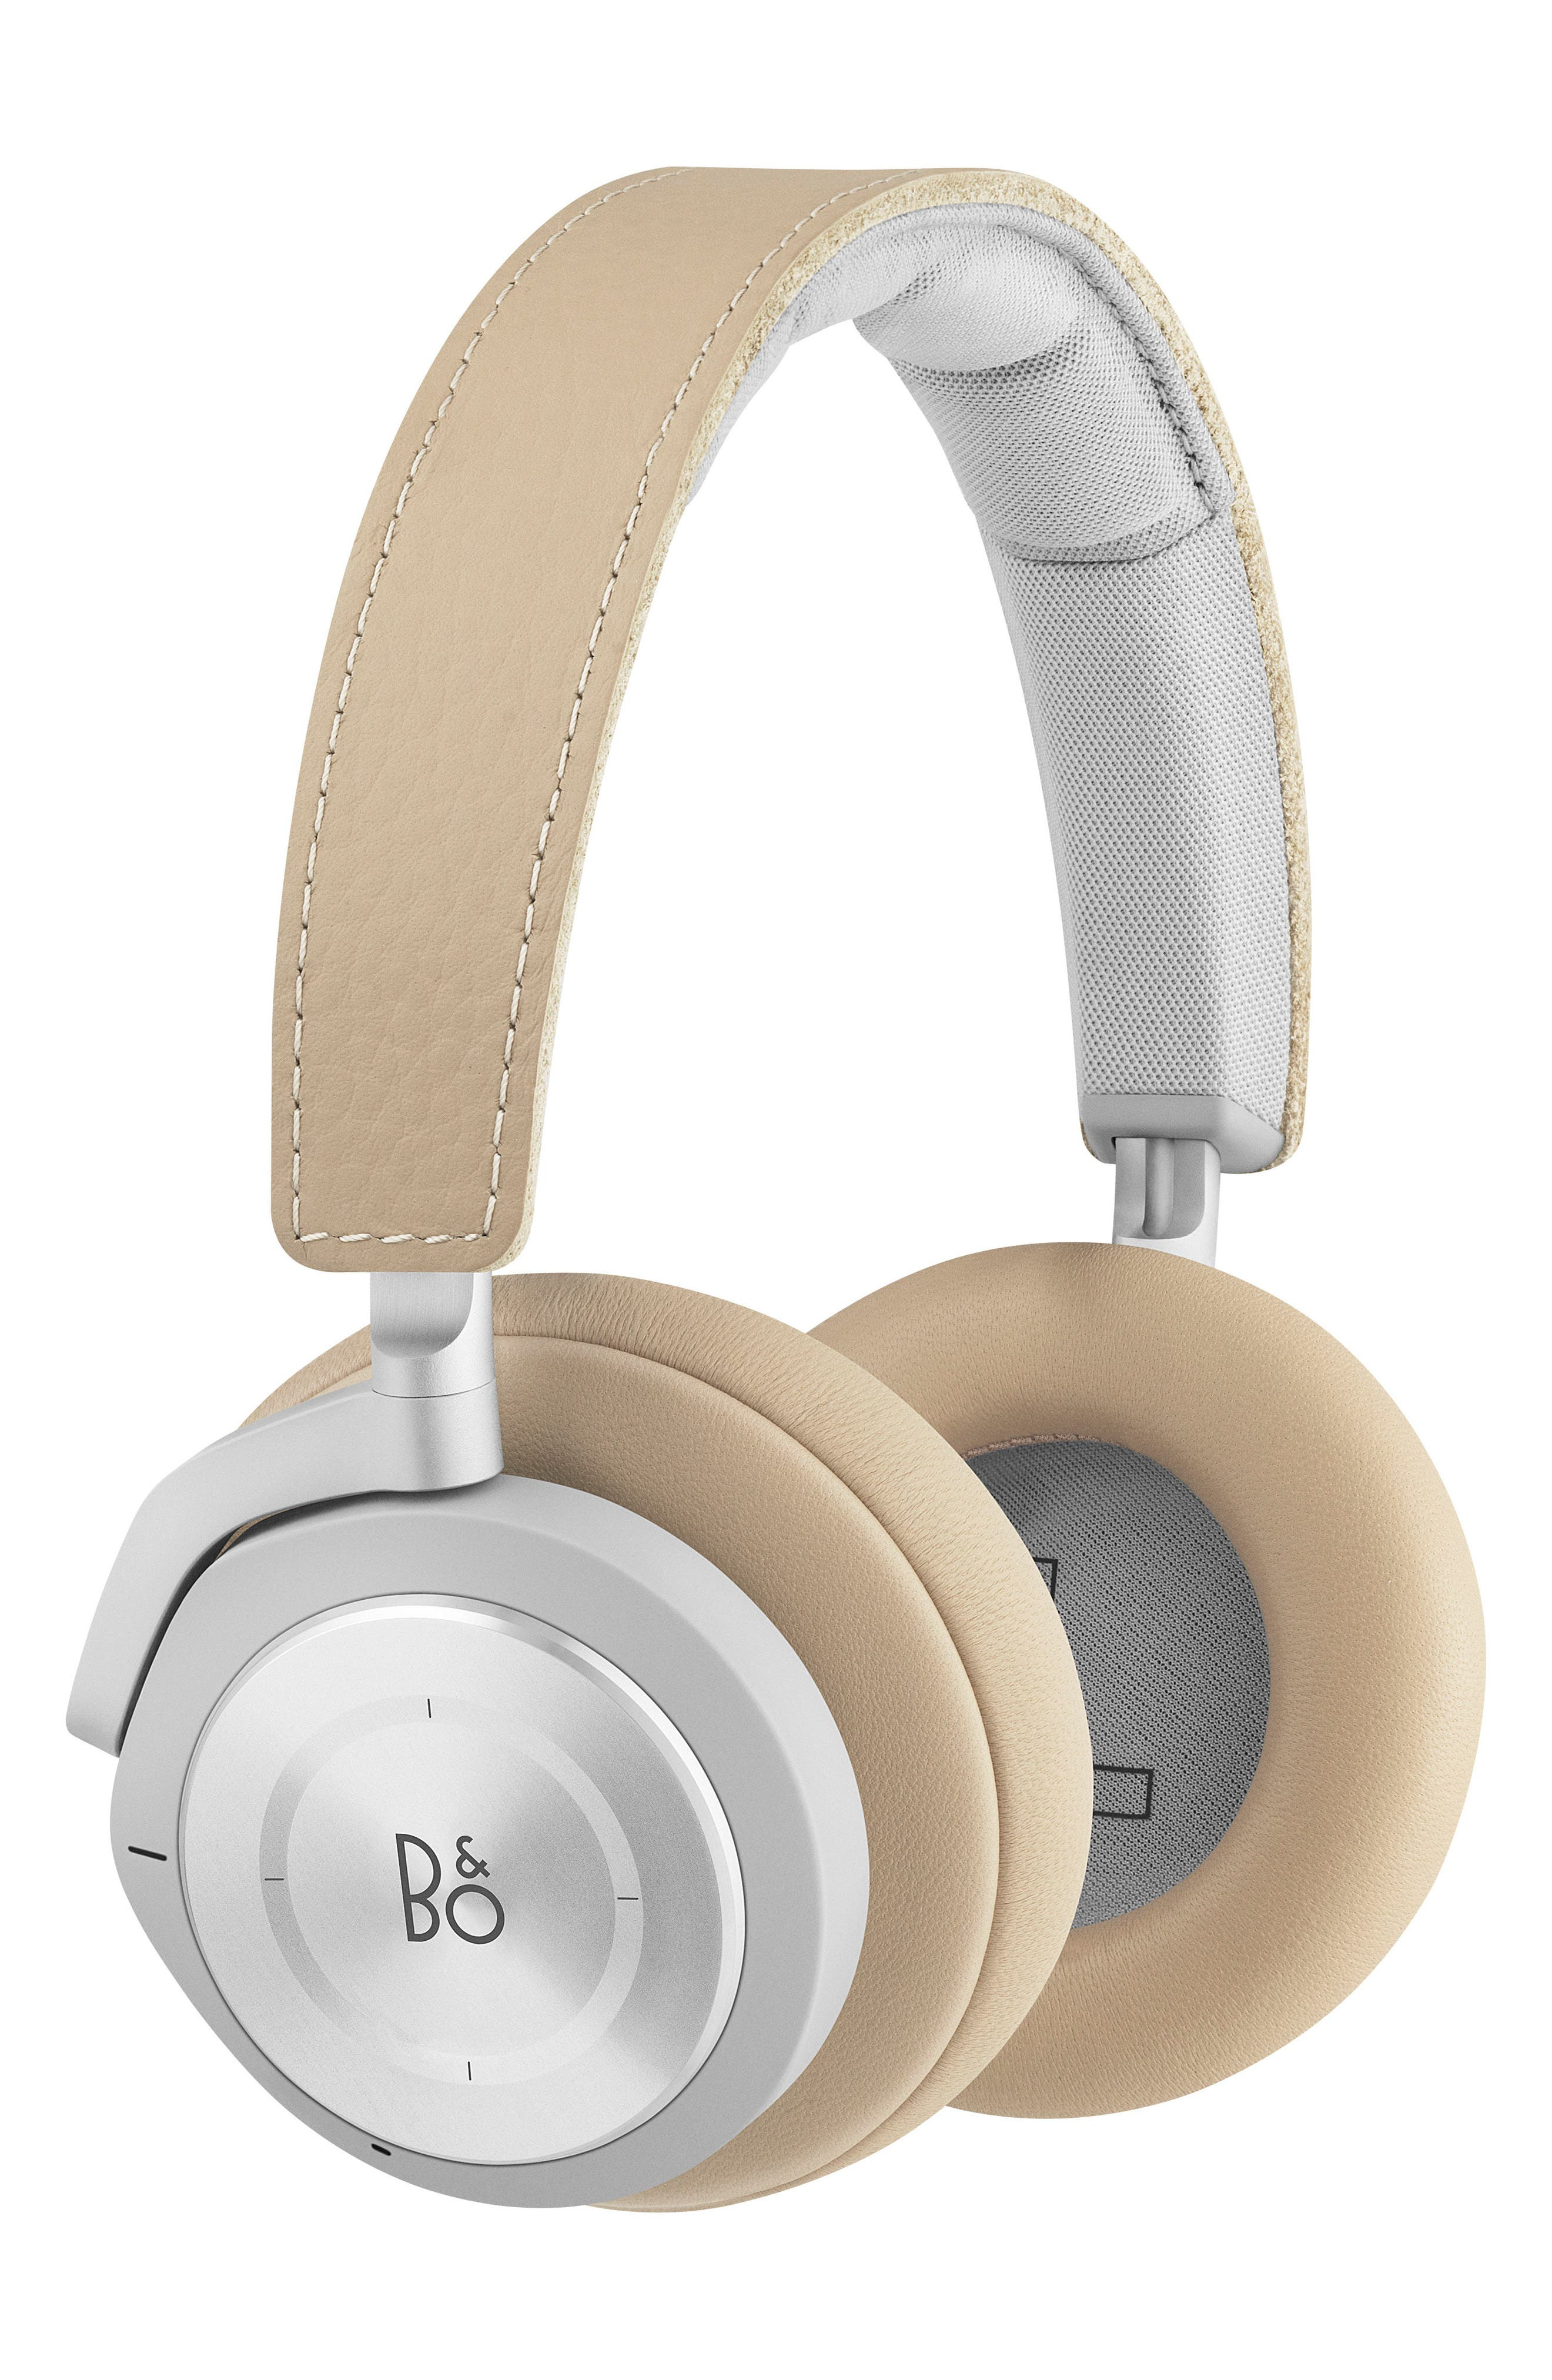 Beoplay H9I Noise Canceling Bluetooth<sup>®</sup> Headphones,                             Main thumbnail 1, color,                             NATURAL